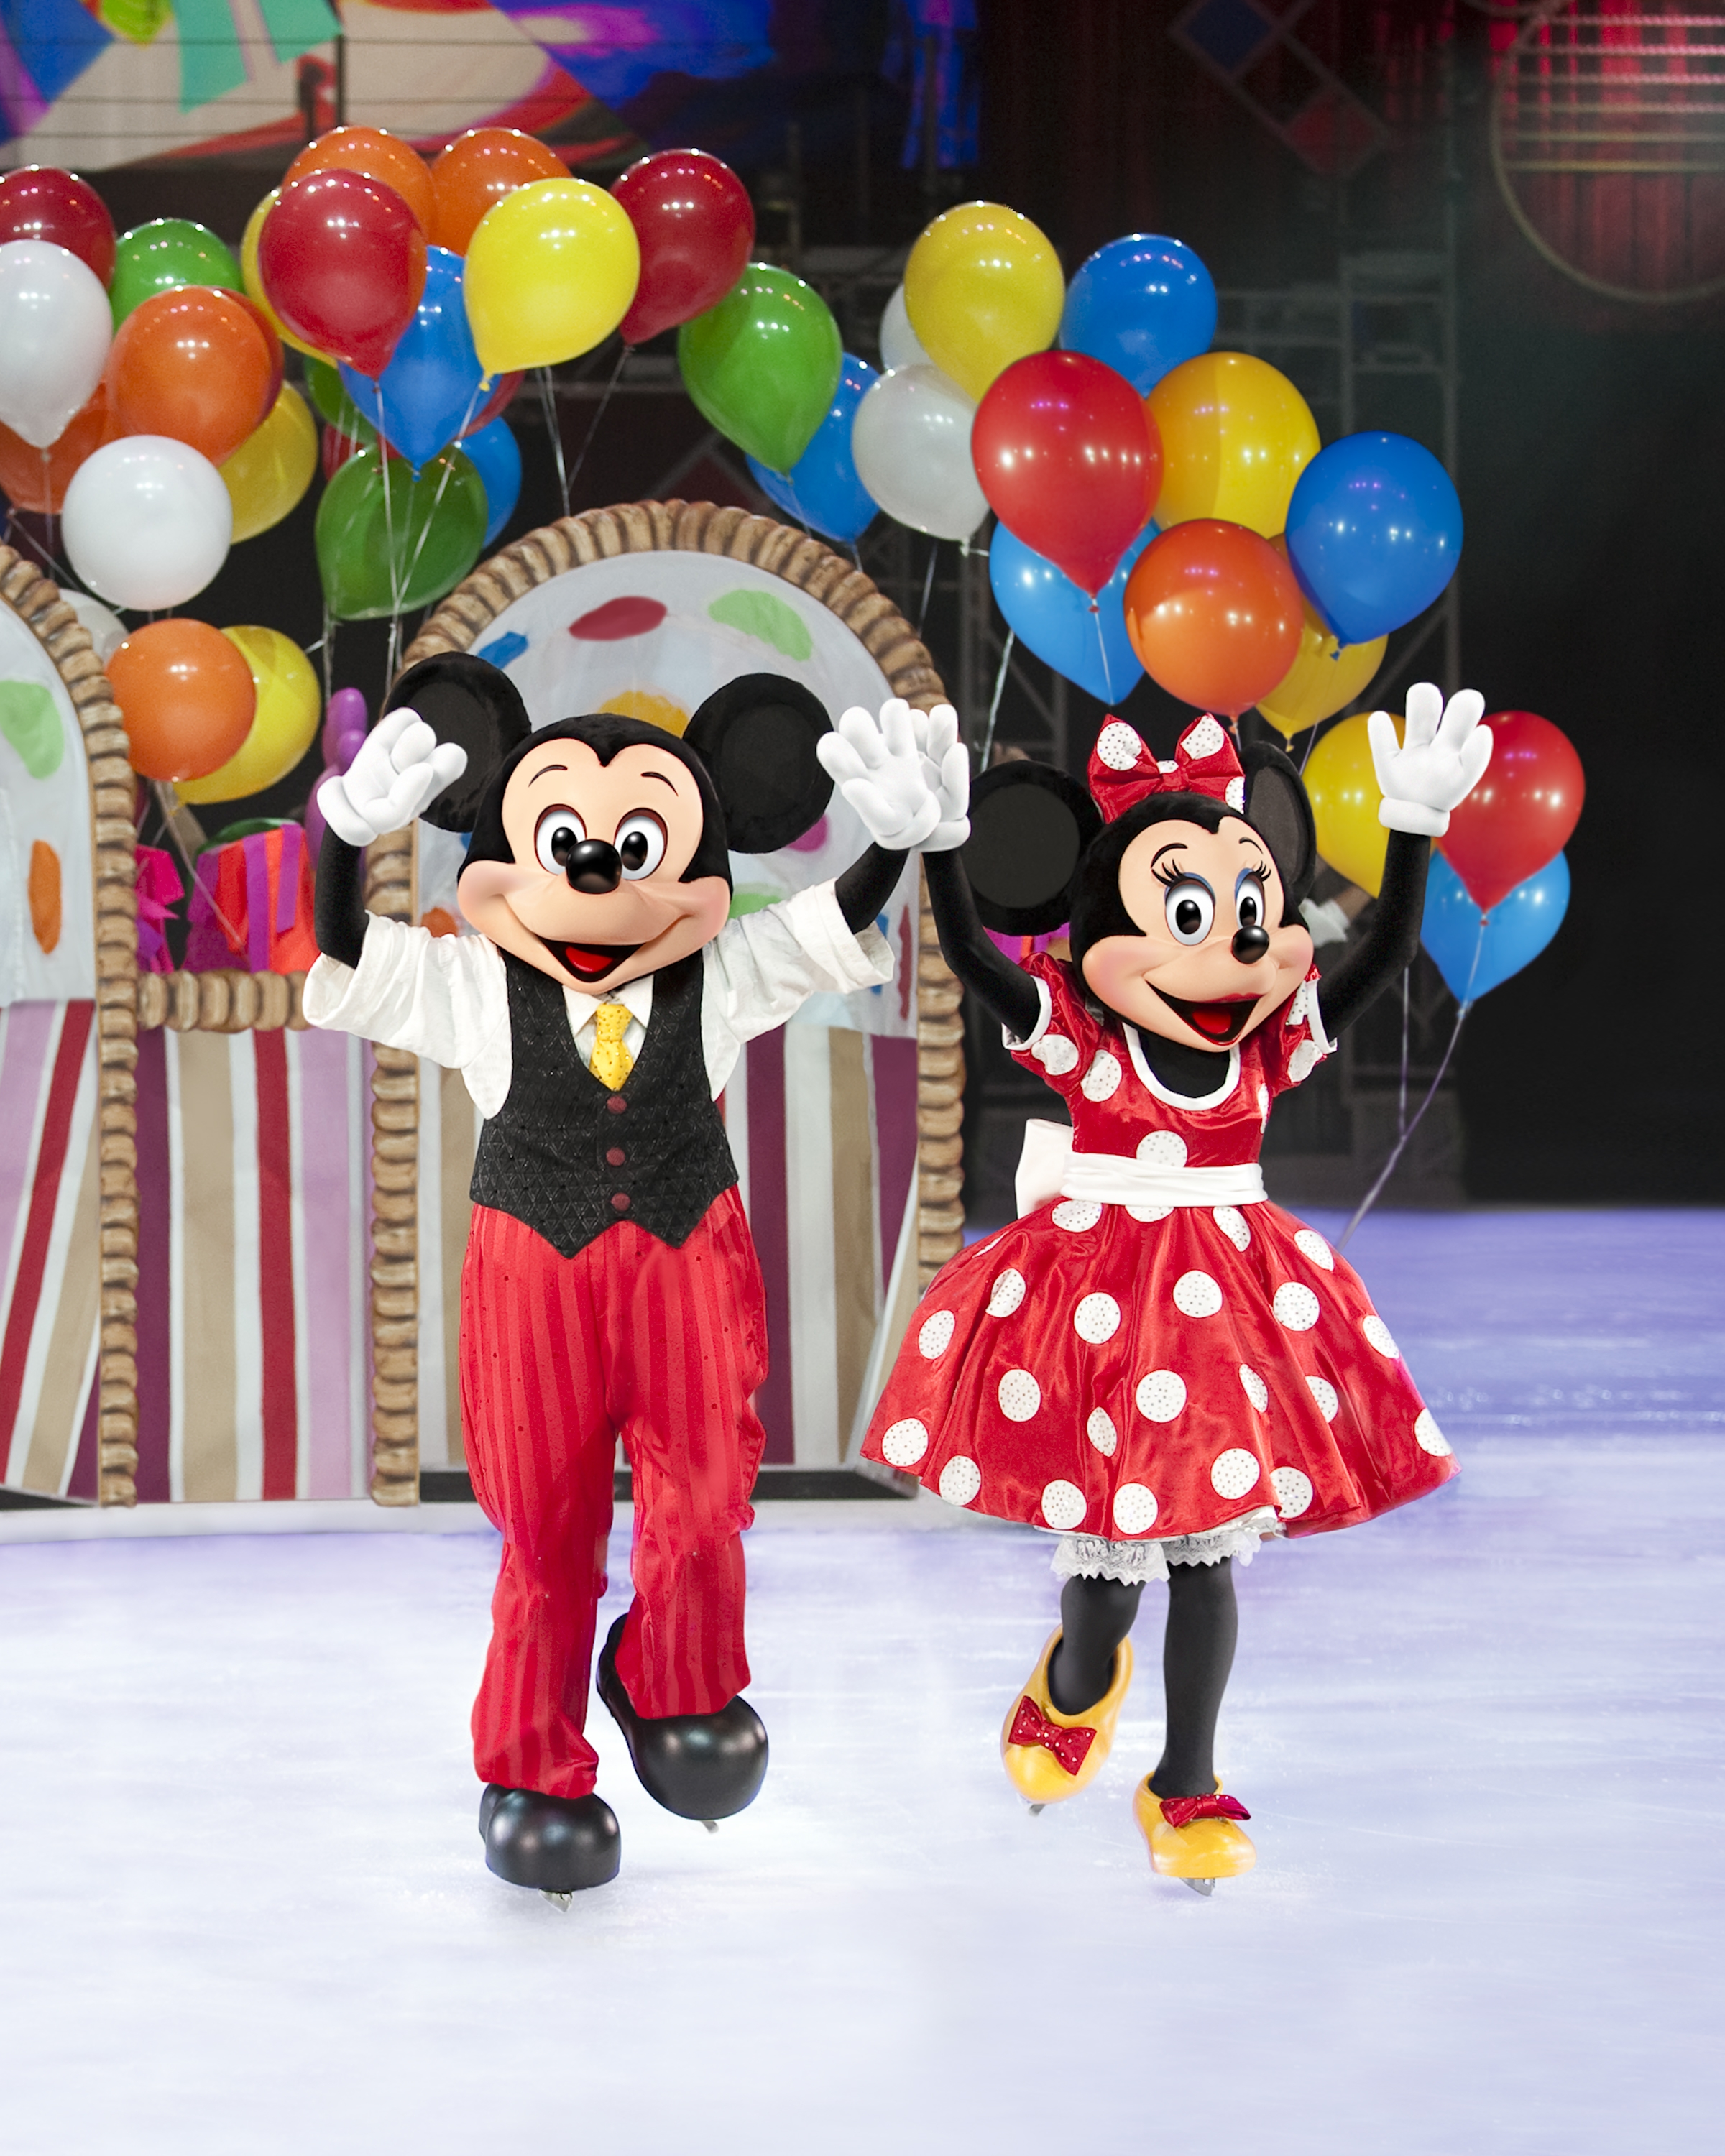 Disney On Ice Lets Party at the Birmingham LG Arena in February 2013